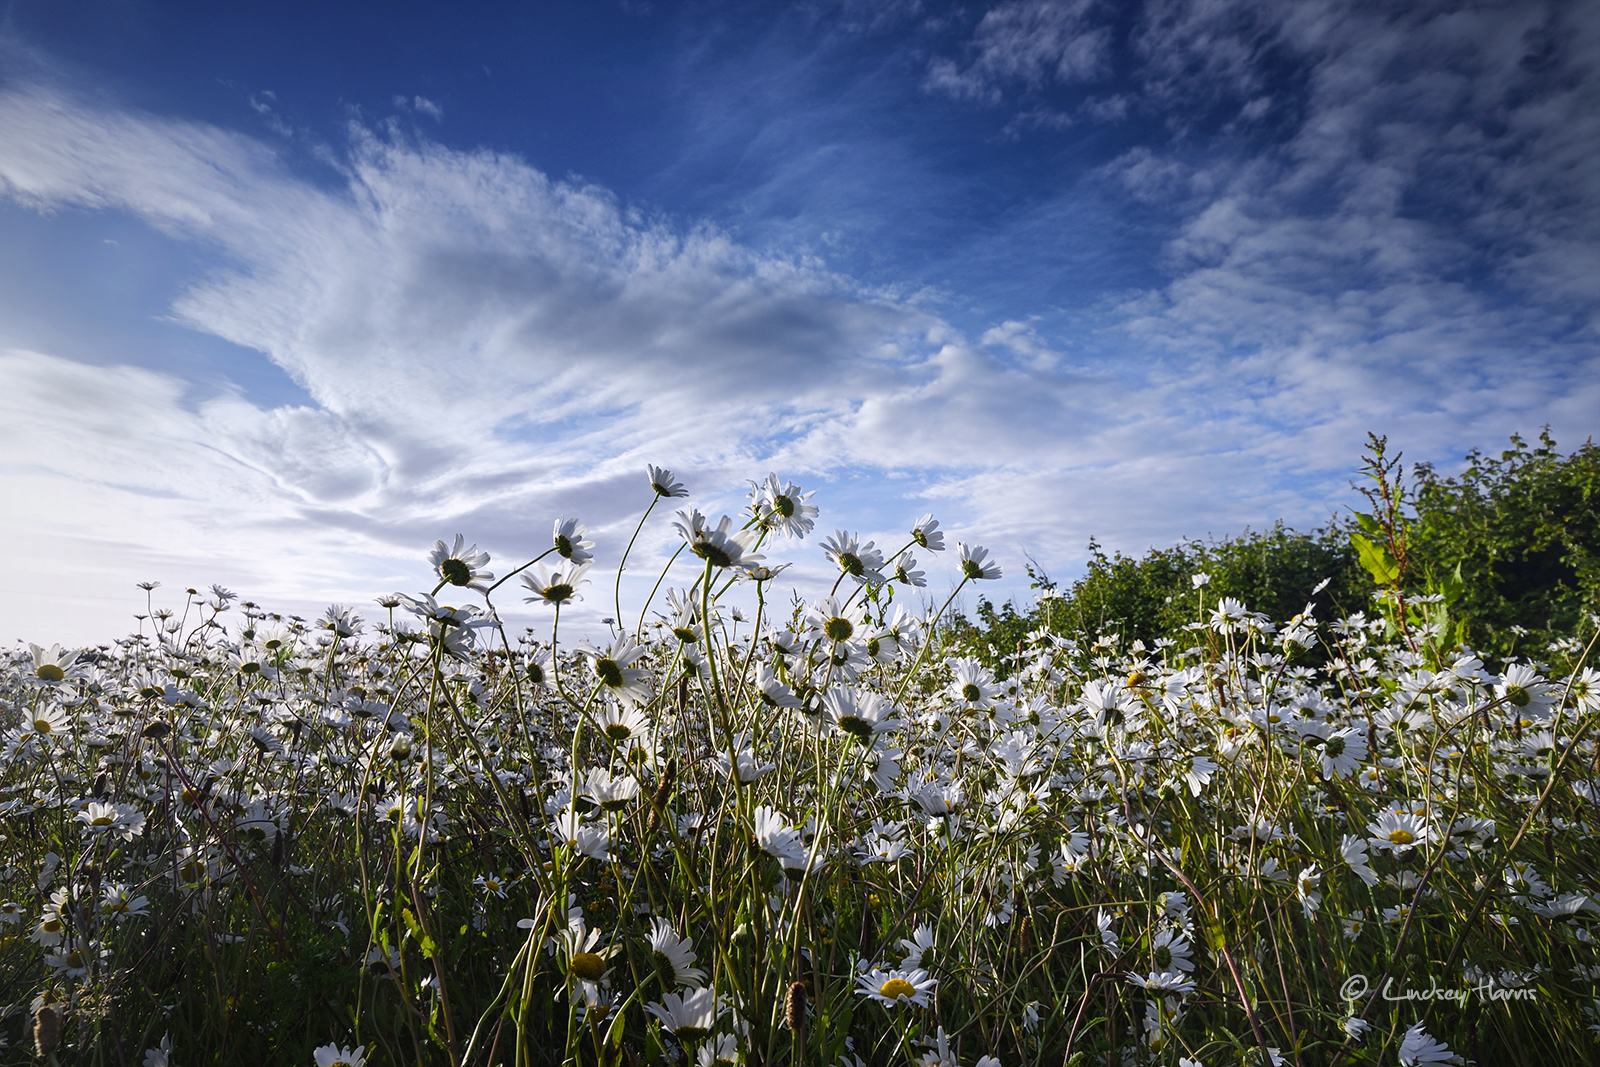 Sun rises over a field of white Ox-eye daisies in Dorset.